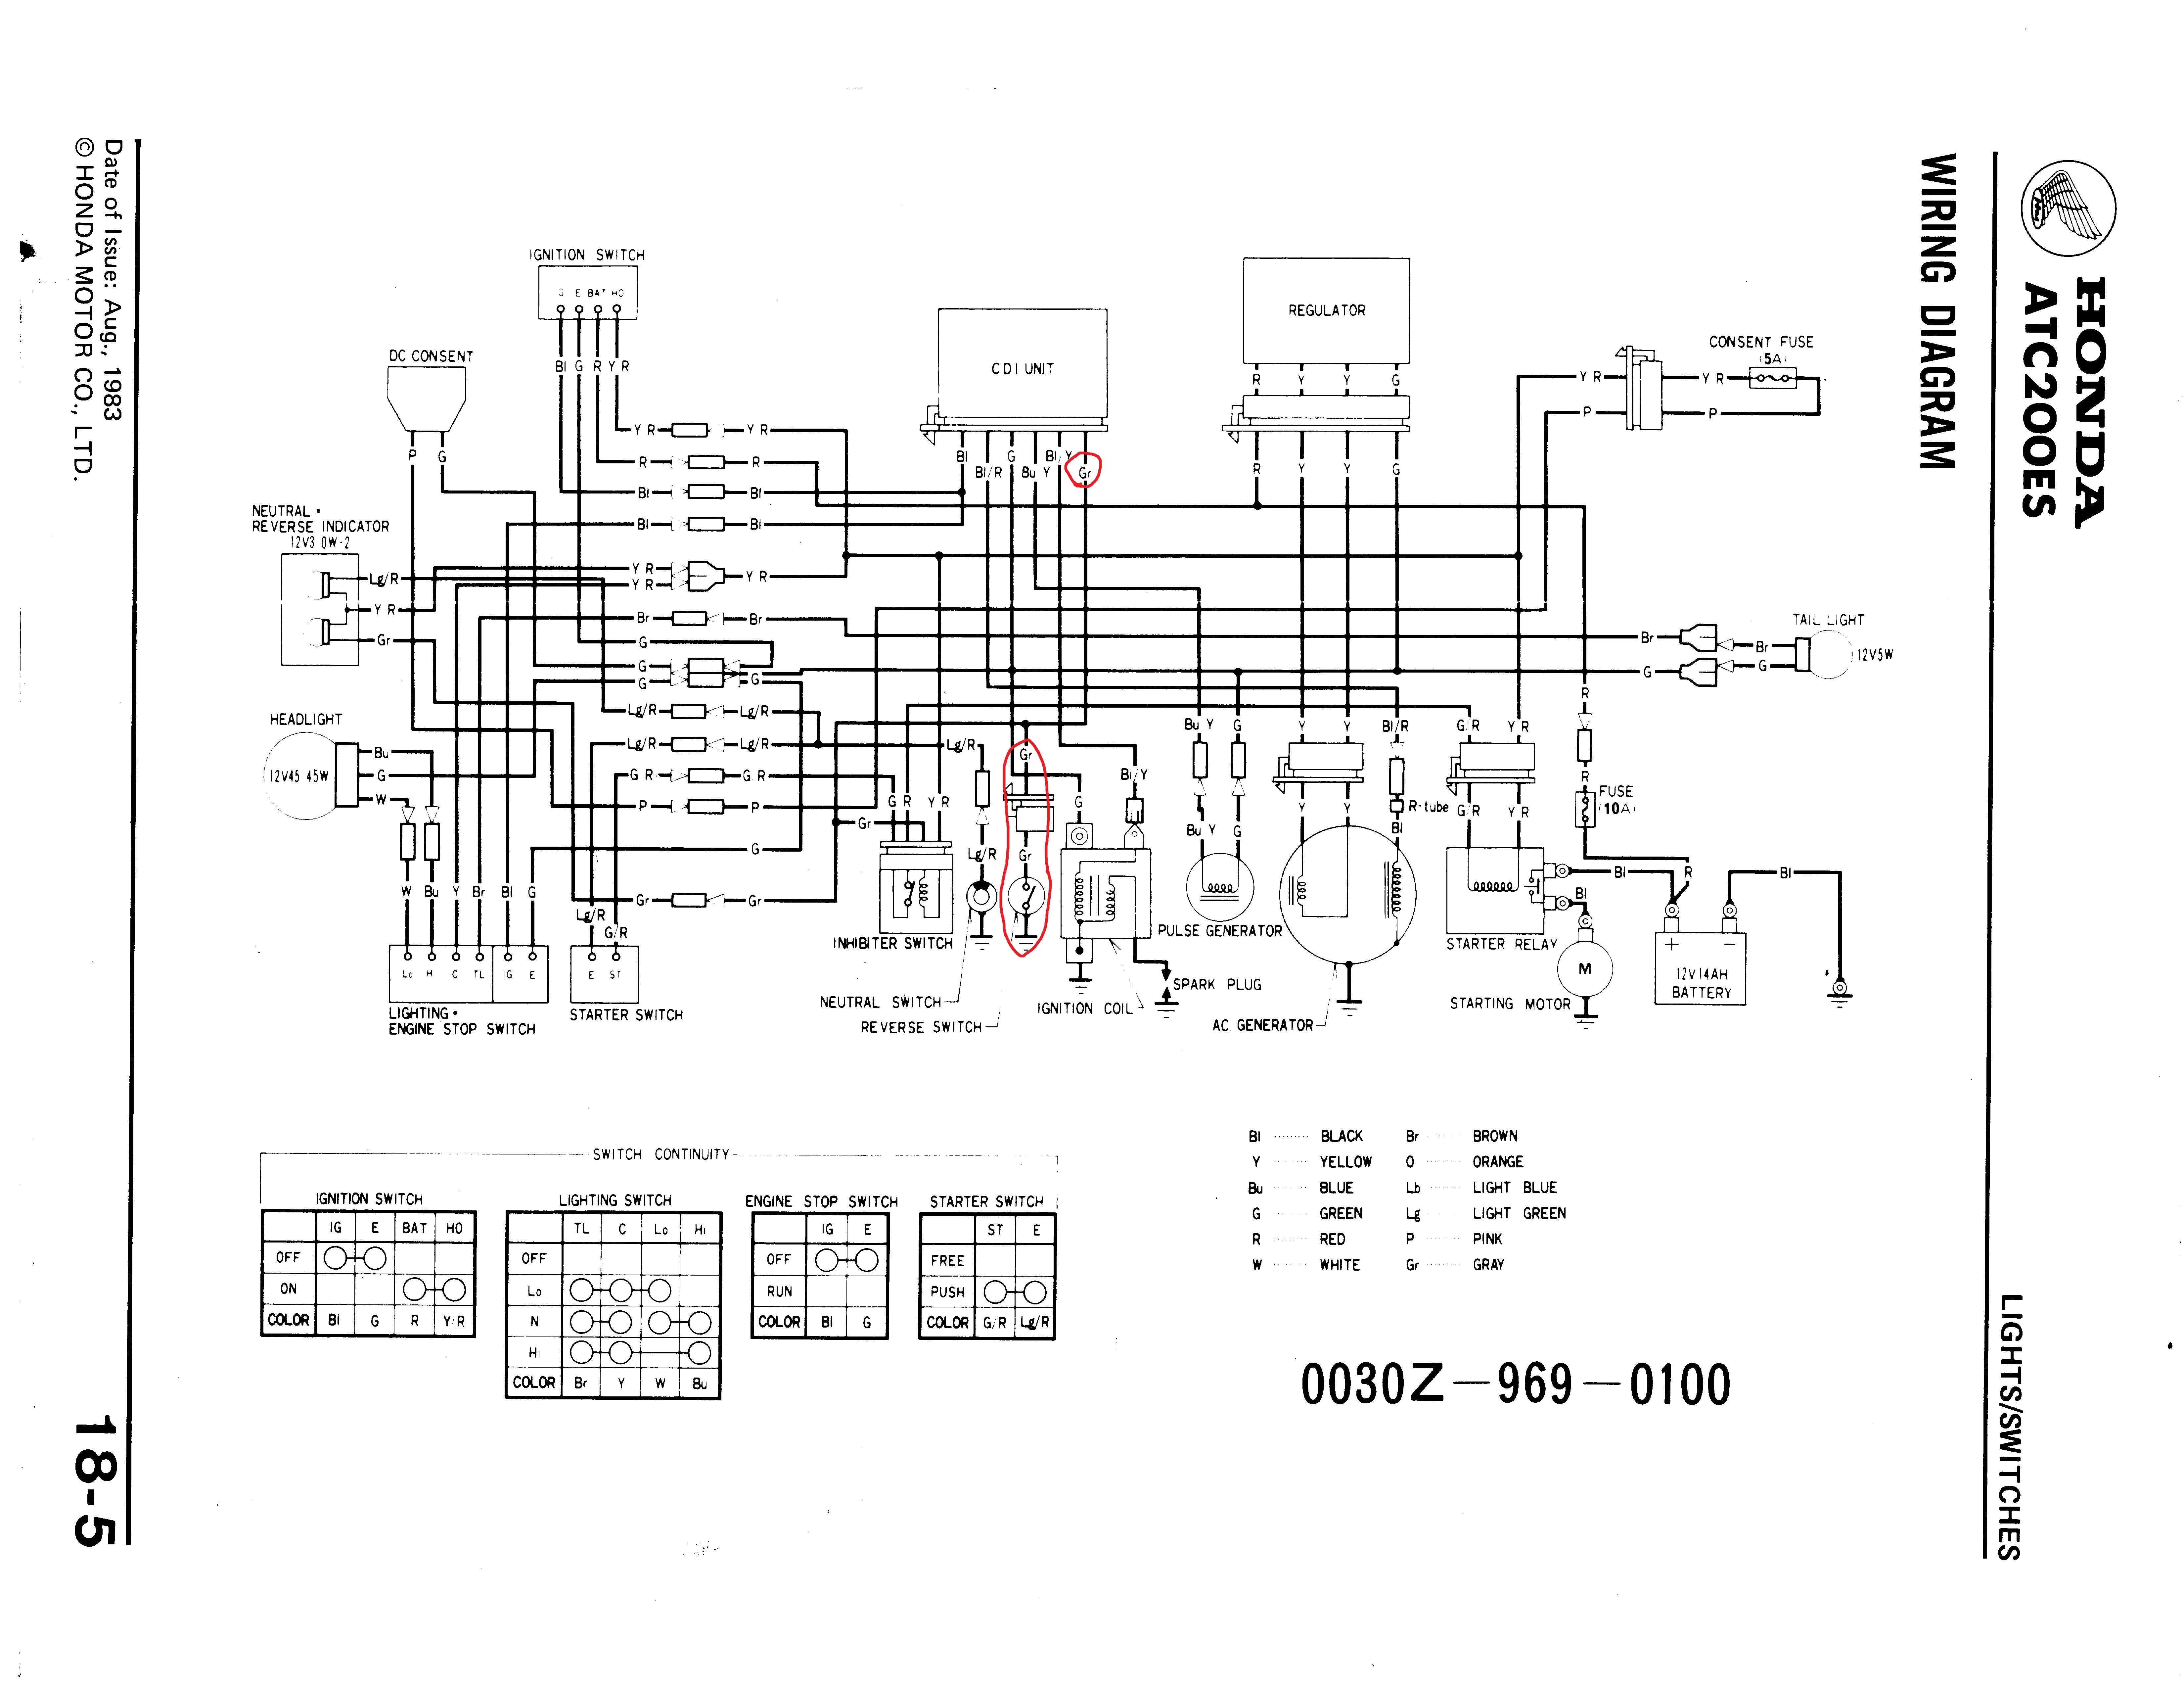 1998 honda fourtrax 300 wiring diagram